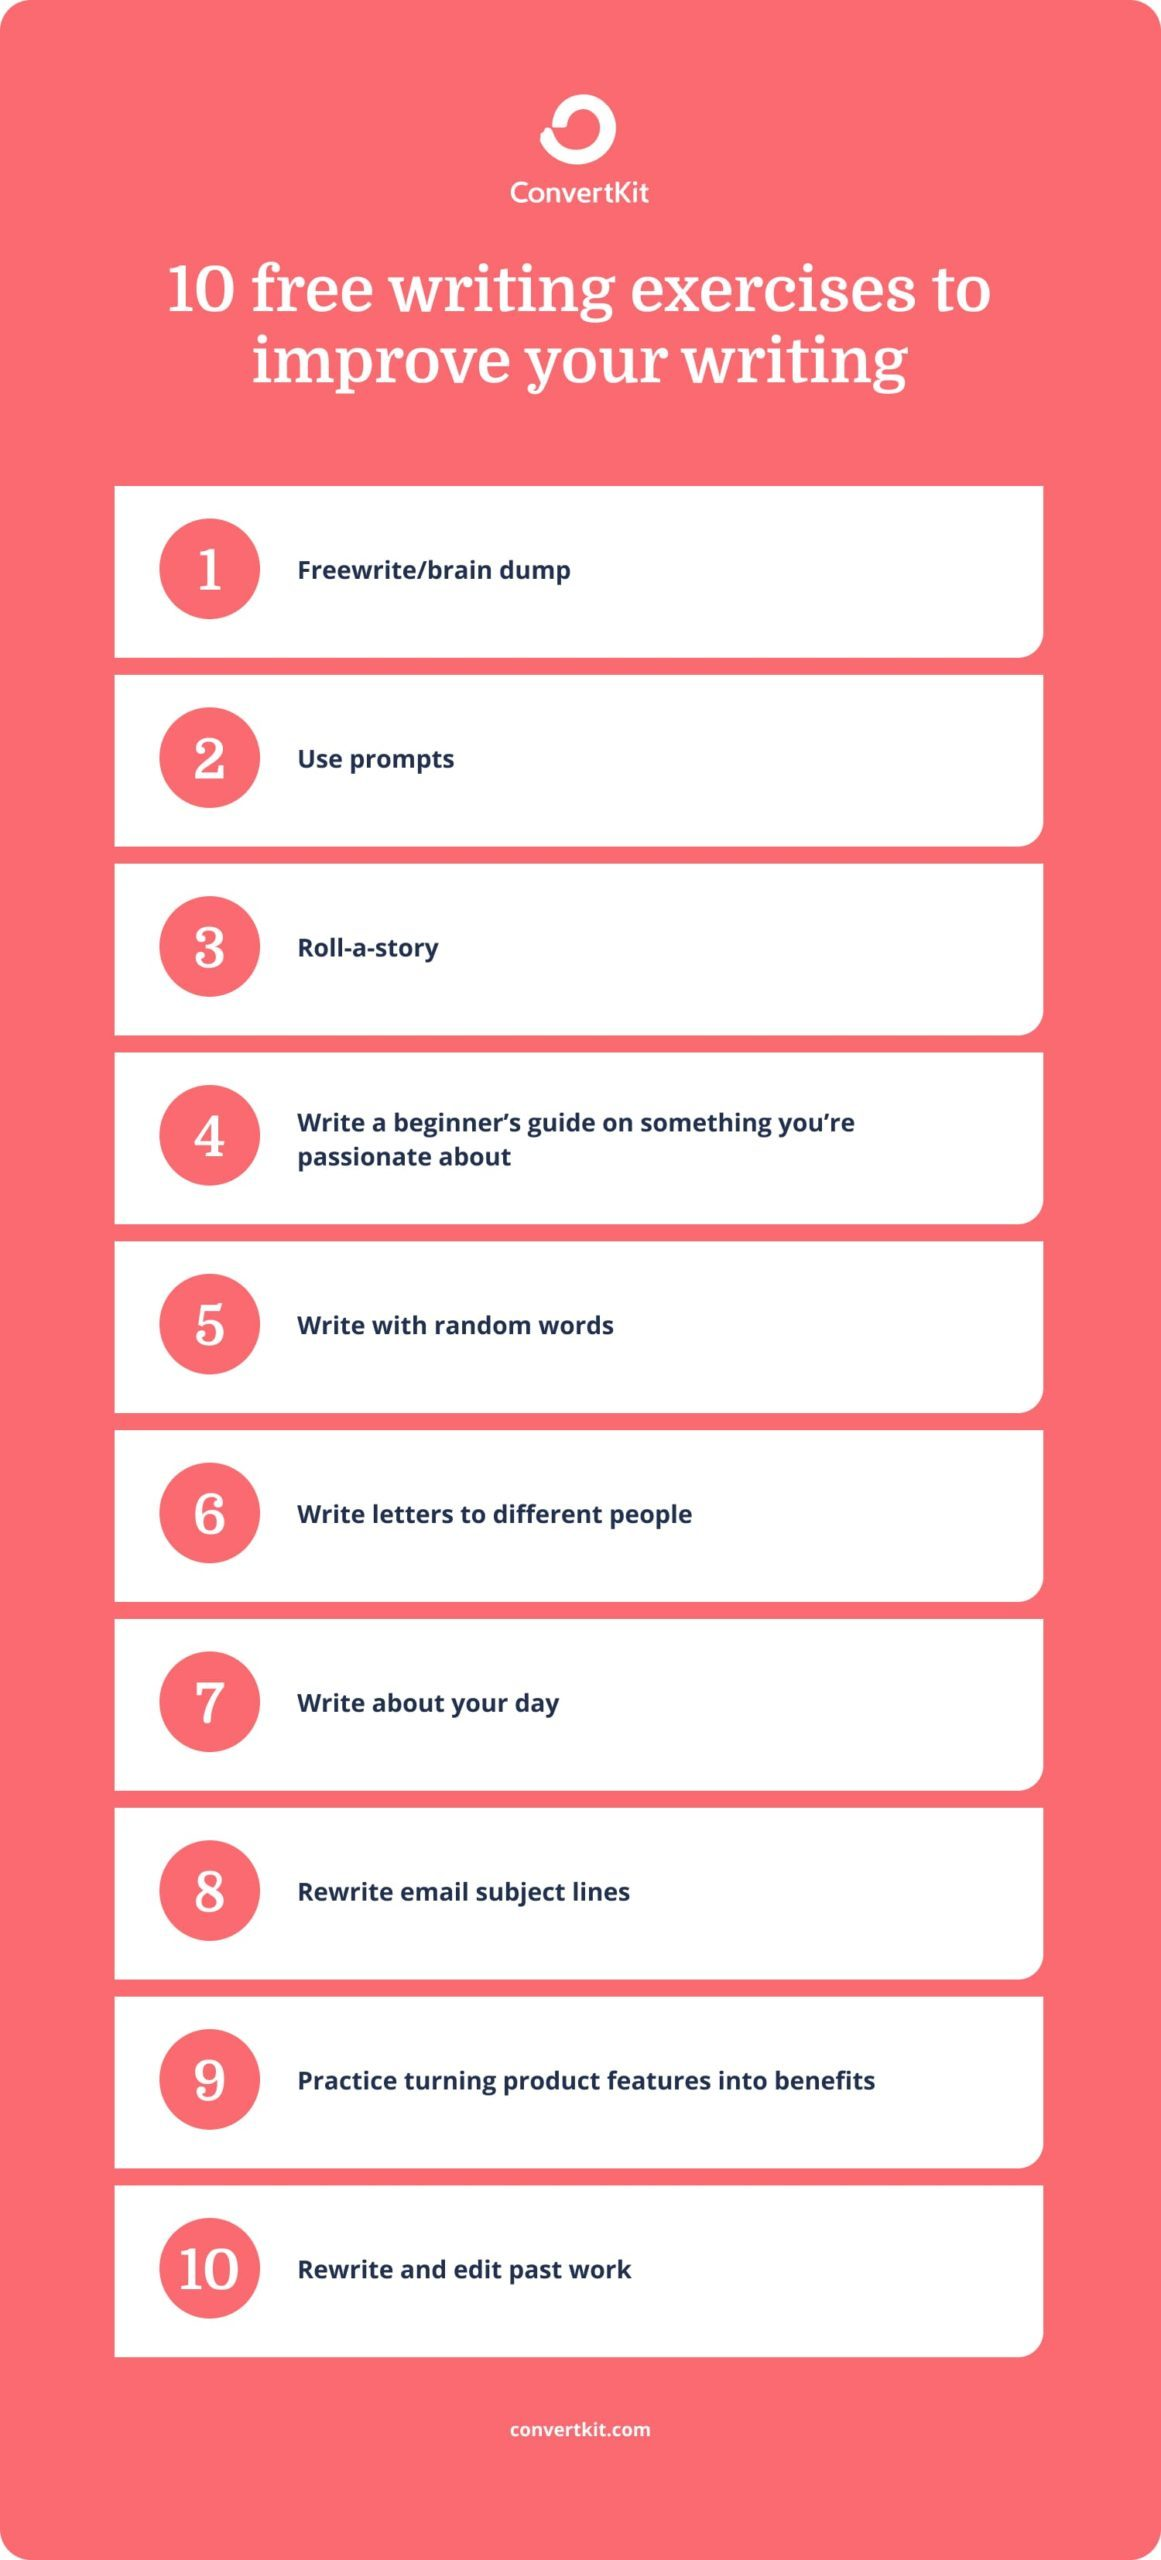 10 ten-minute writing exercises to sharpen your skills (even as a non-writer)